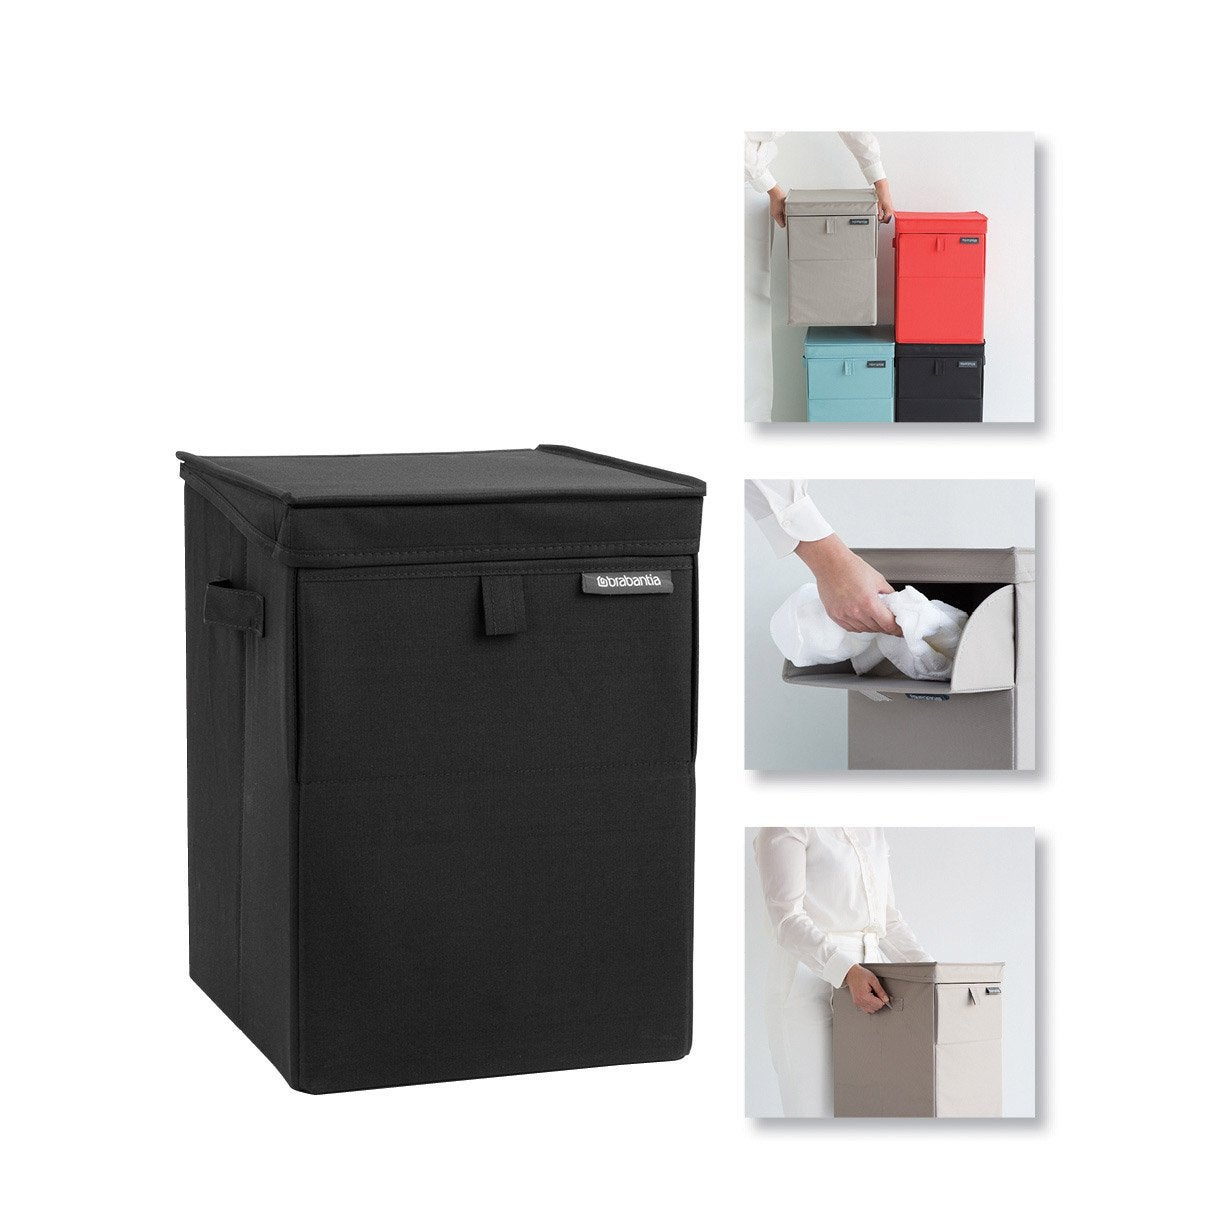 panier linge coffre a linge empilable noir x x cm leroy merlin. Black Bedroom Furniture Sets. Home Design Ideas